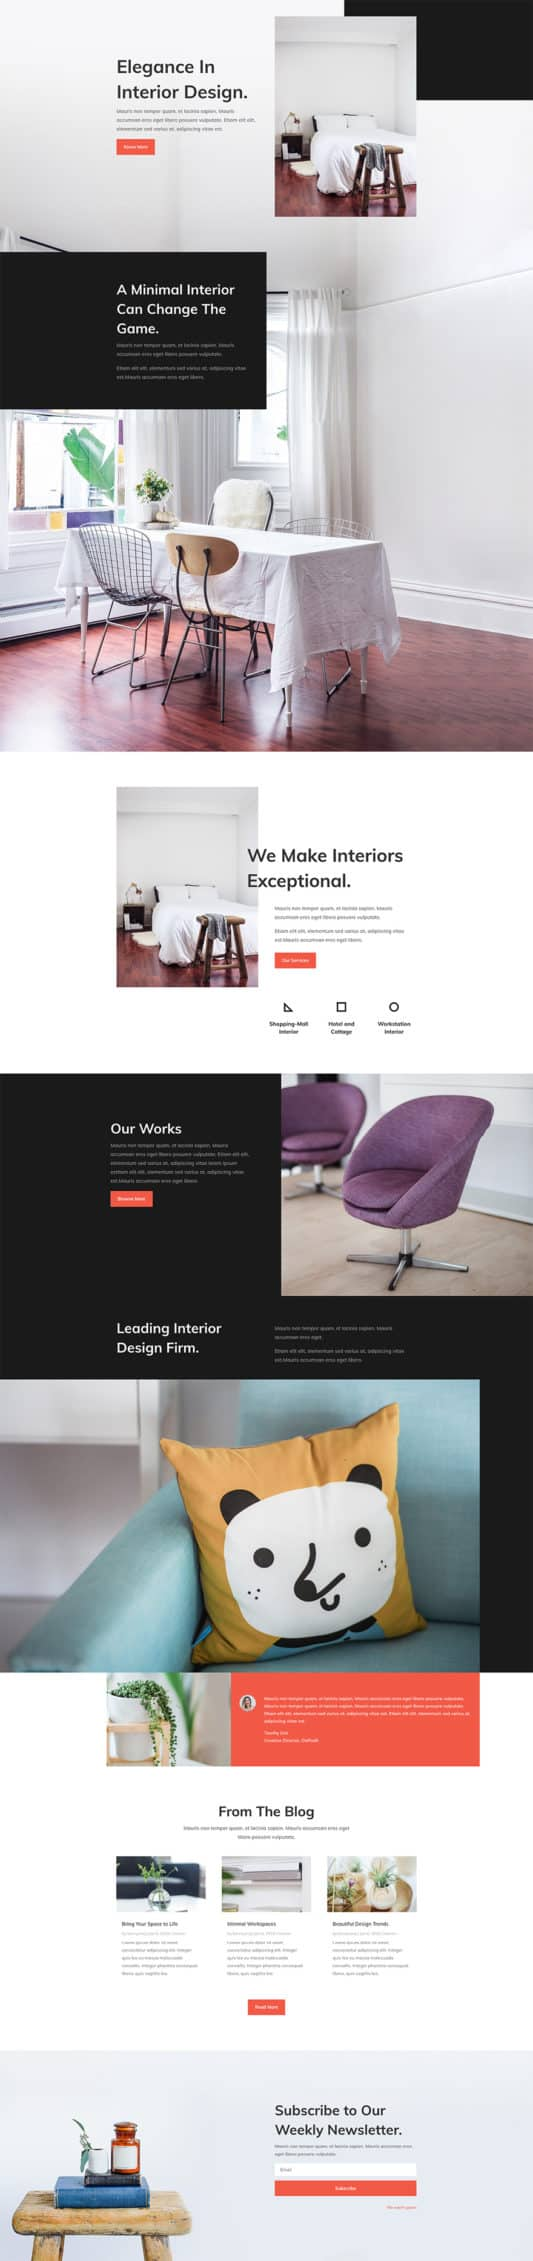 The Interior Design Company Page Style: Homepage Design 1